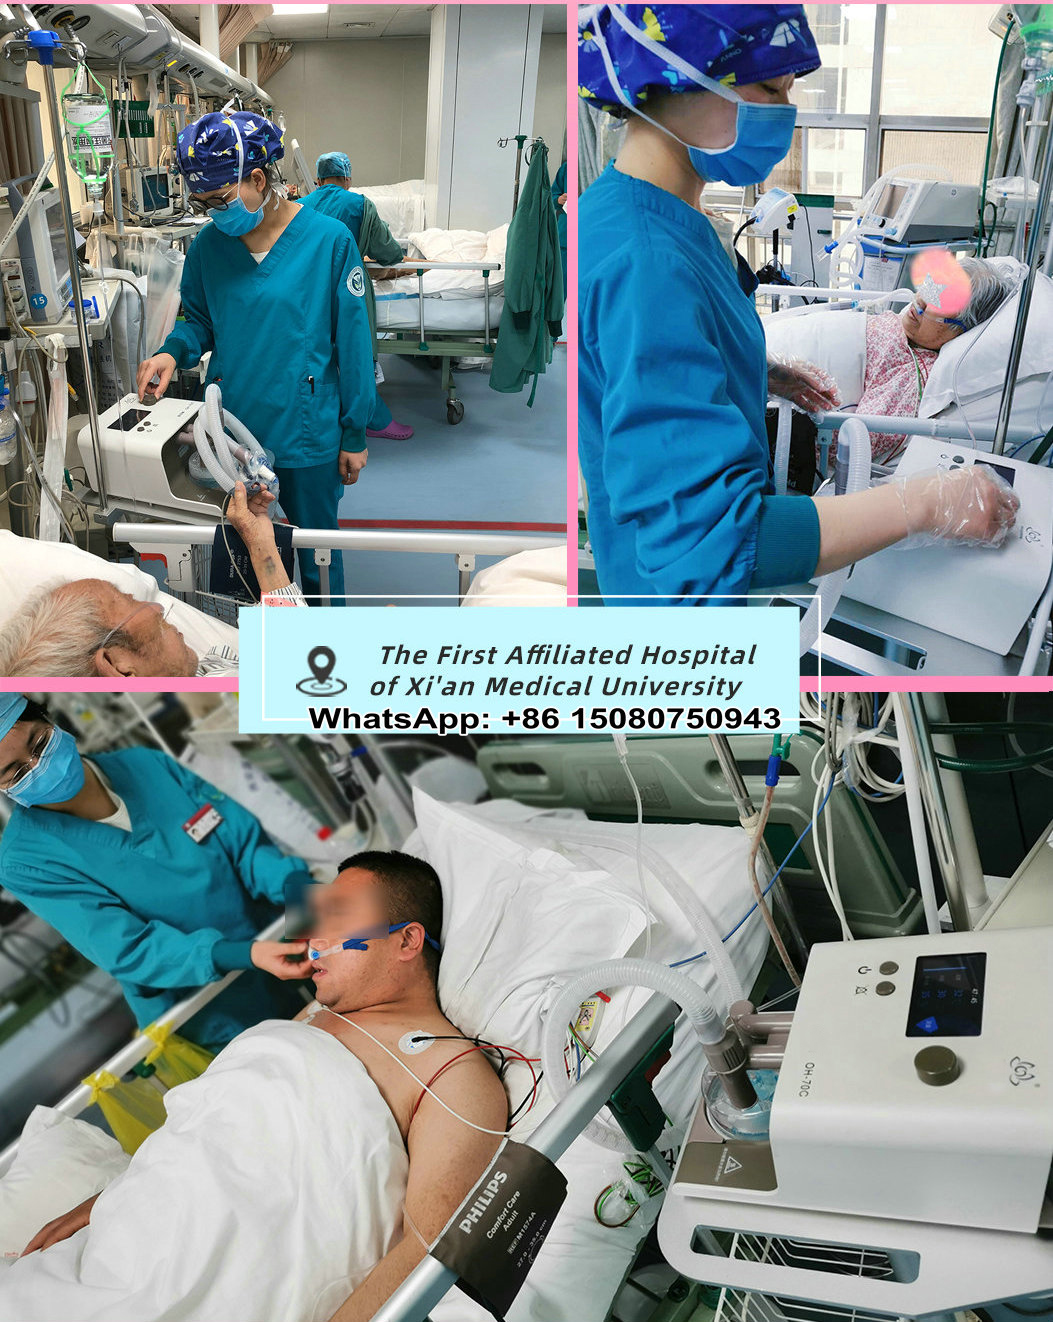 application of HFNC Heated humidified high flow nasal cannula oxygen ventilator